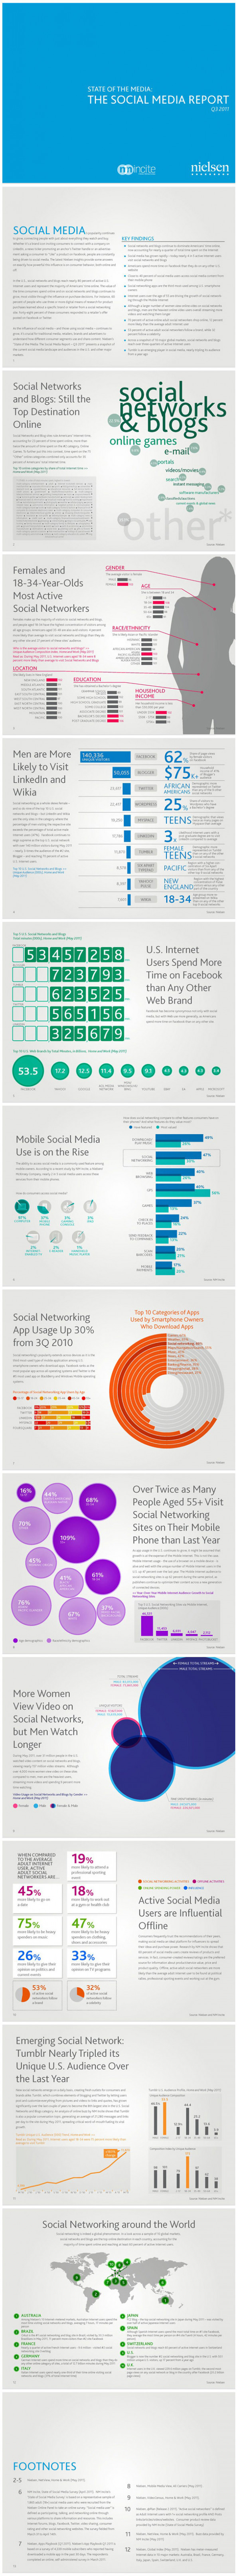 State of Social Media: The Social Media Report  Infographic